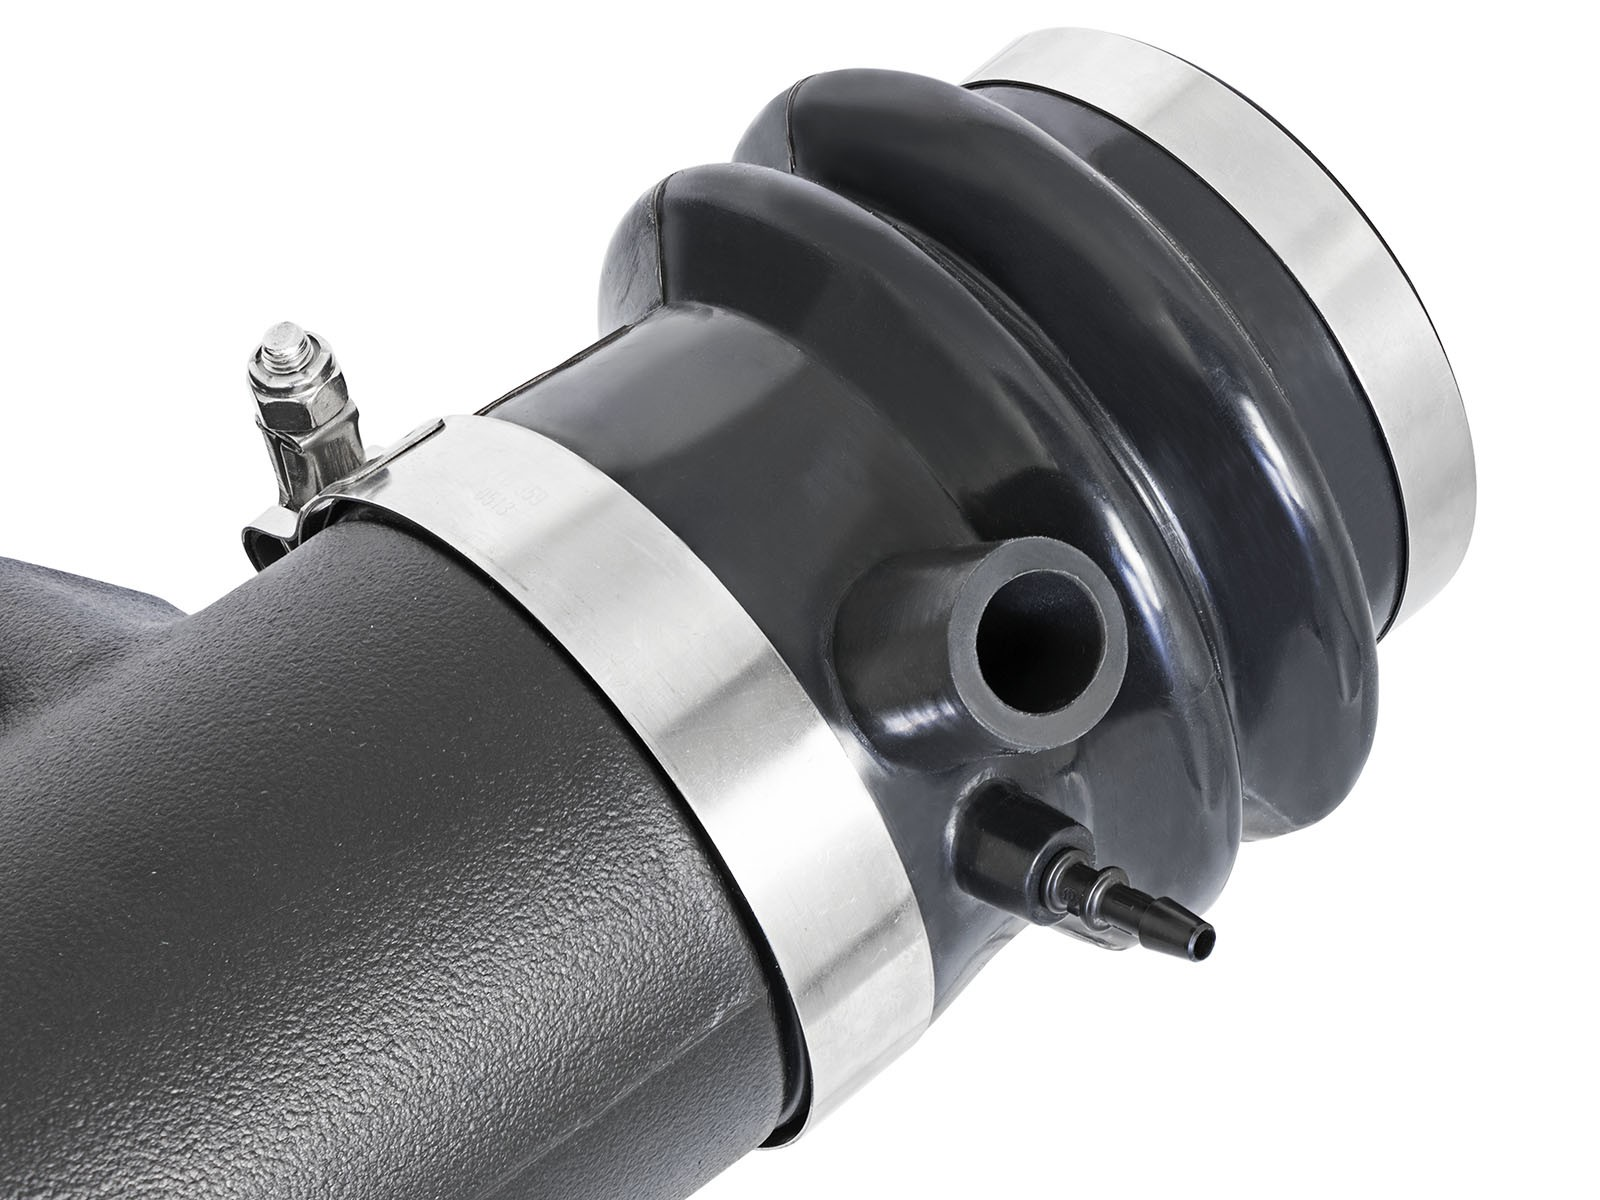 Momentum Gt Pro 5r Cold Air Intake System Afe Power 2003 F250 Fuel Filter